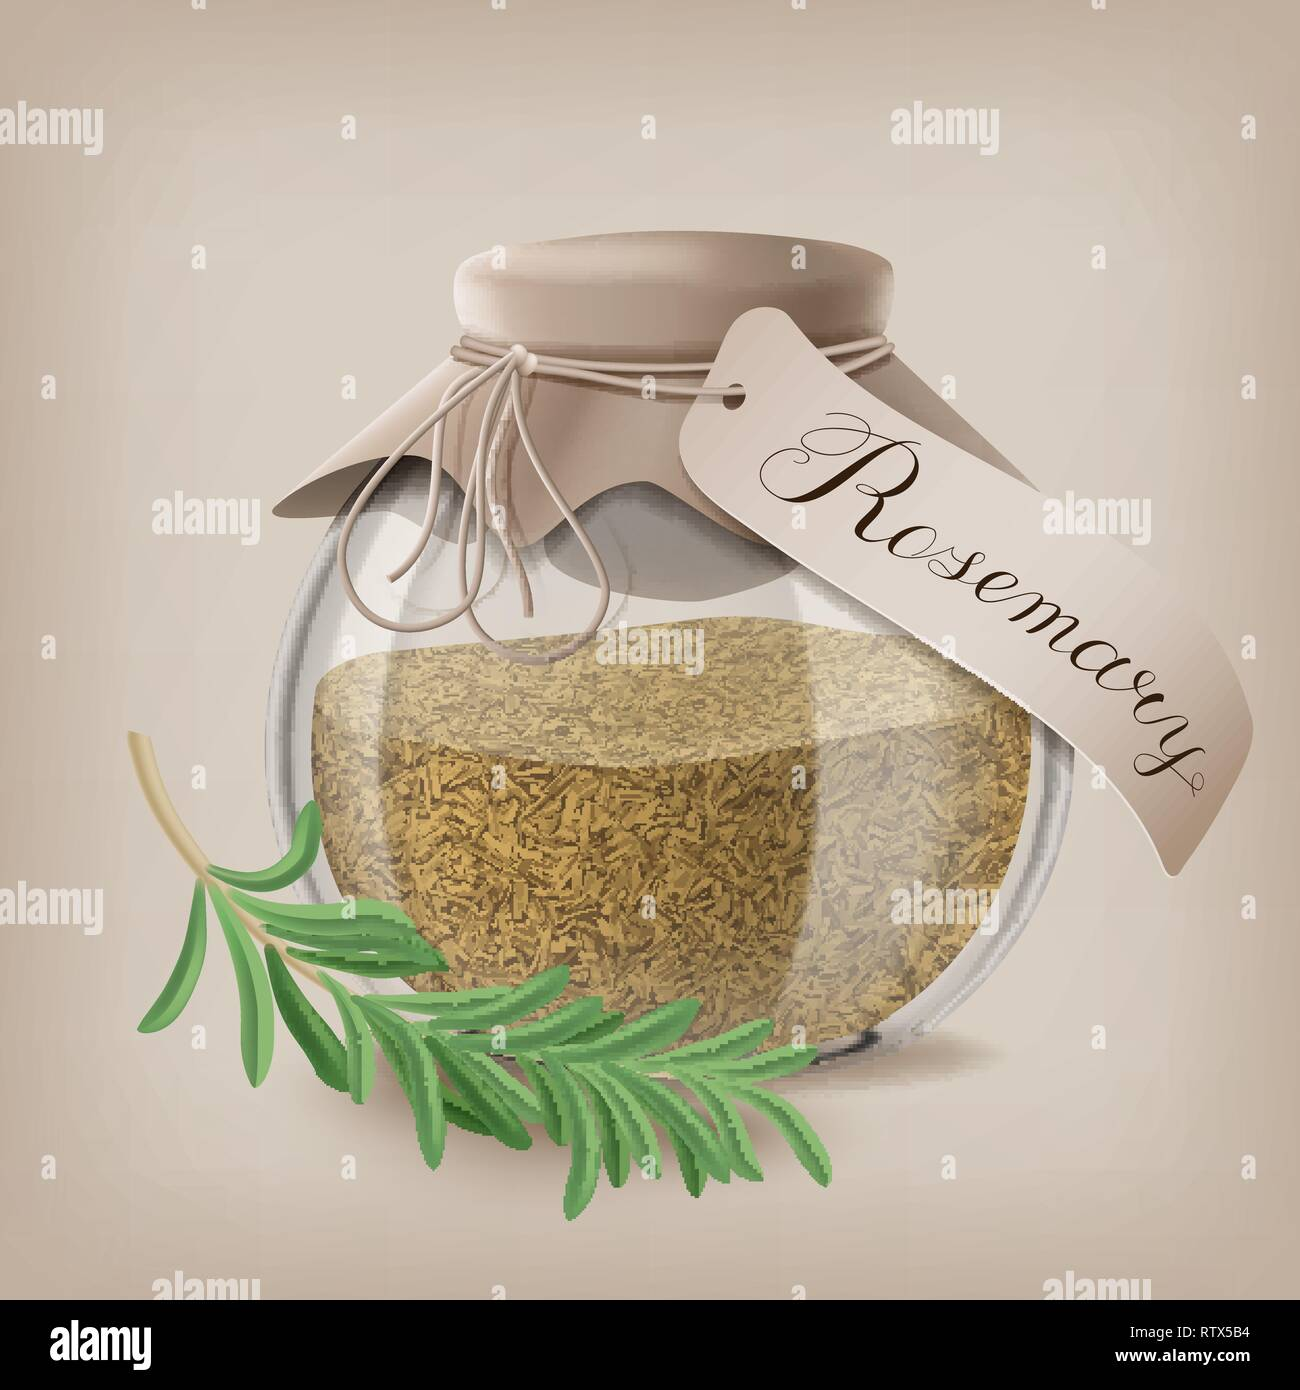 Crushed rosemary spice in a glass jar with a sprig of rosemary. Vector illustration - Stock Image